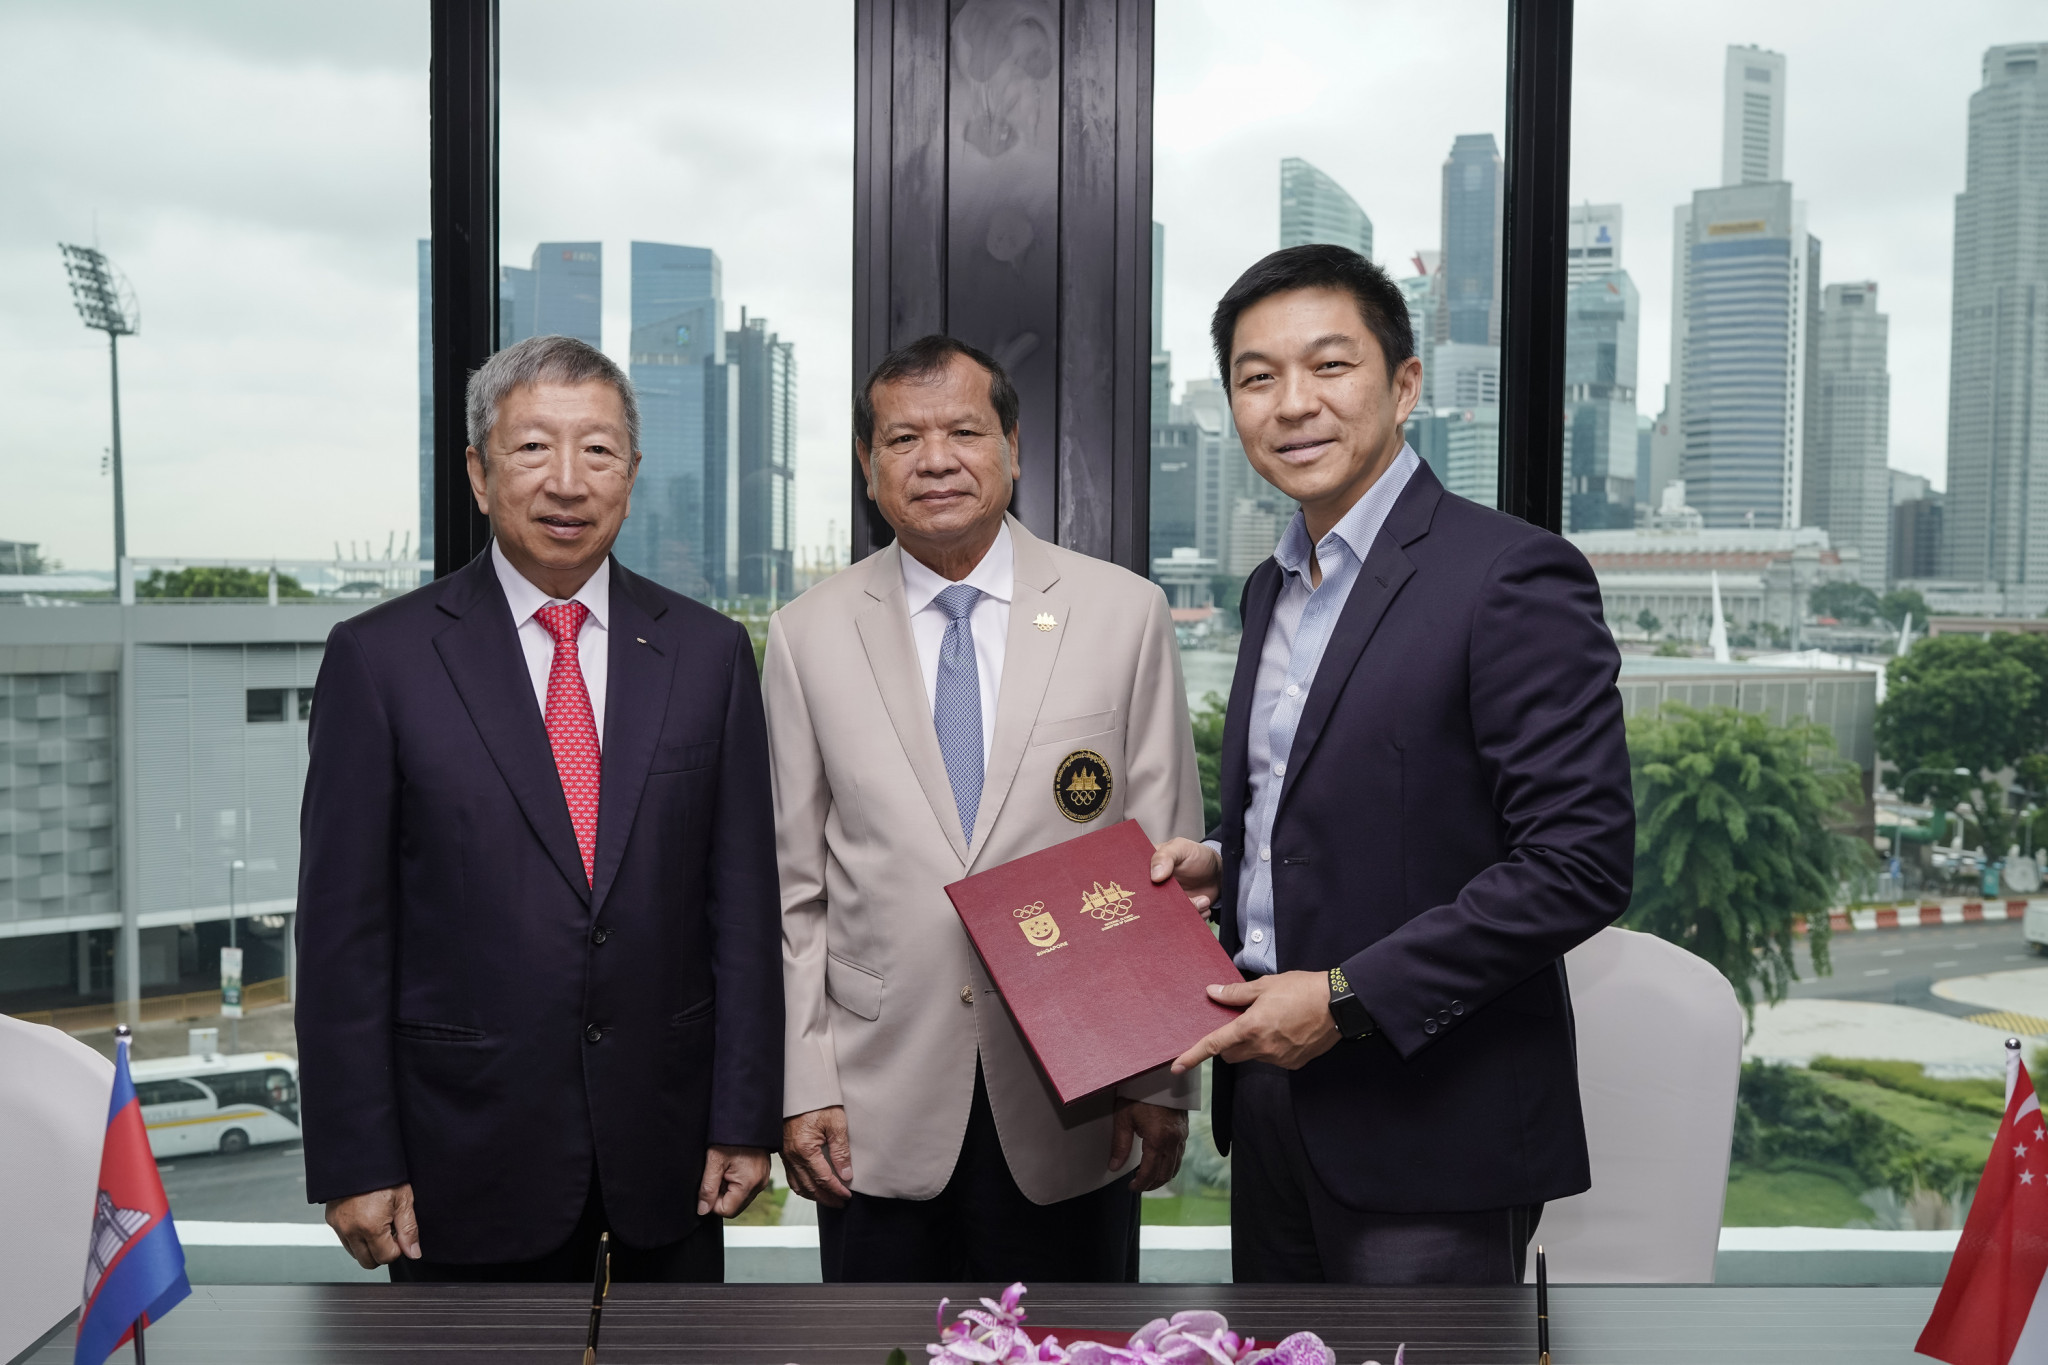 MoU signed between National Olympic Committees of Singapore and Cambodia